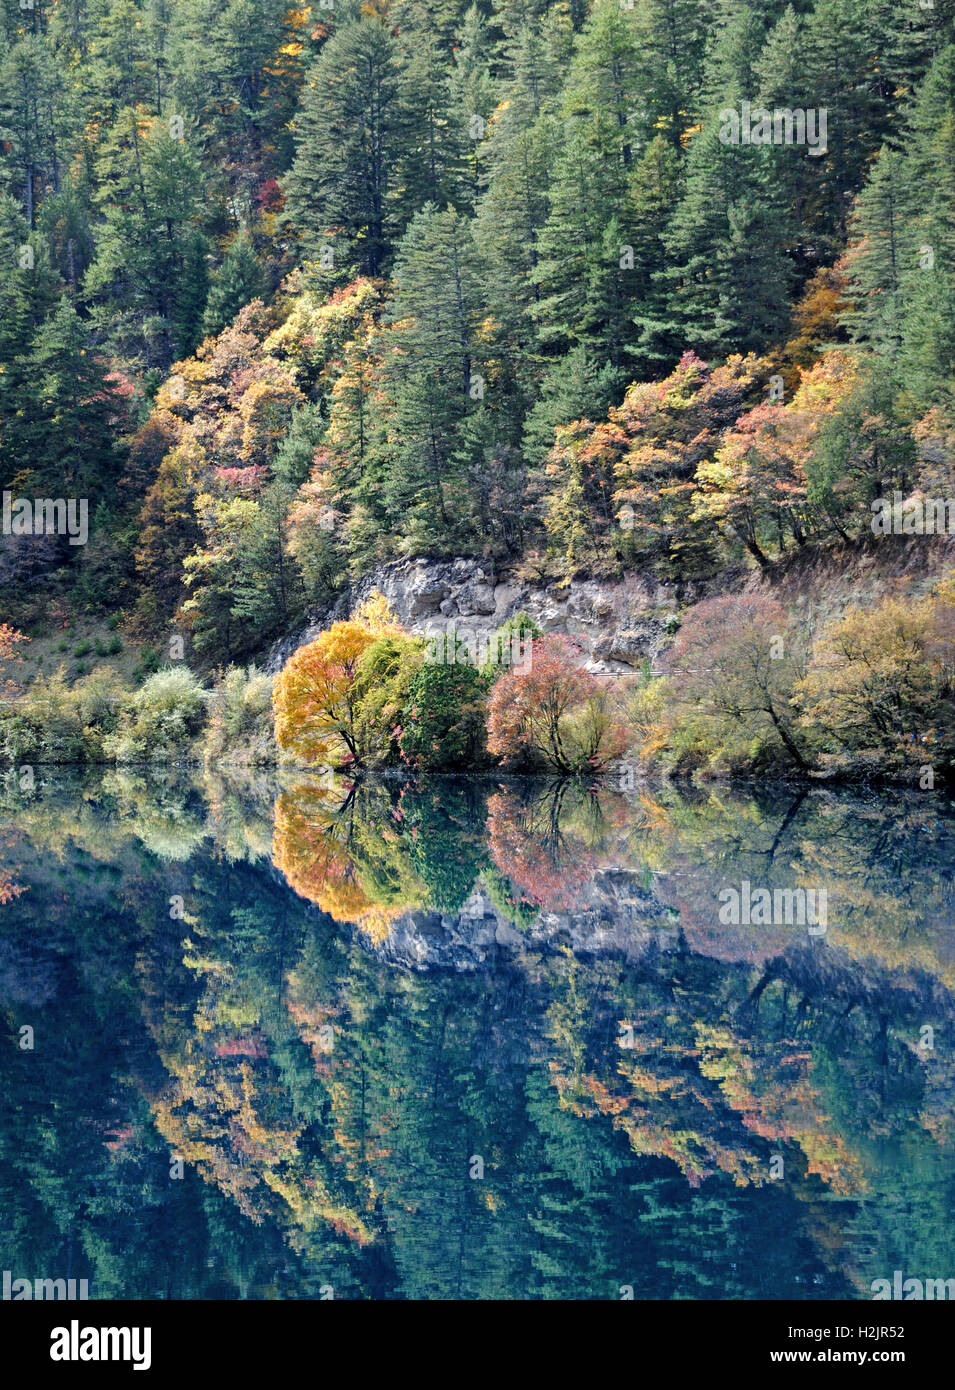 Autumn Colors In Vilas Park Lagoon >> The Autumn Colors Of Pine Trees Reflect In The Emerald Waters Of